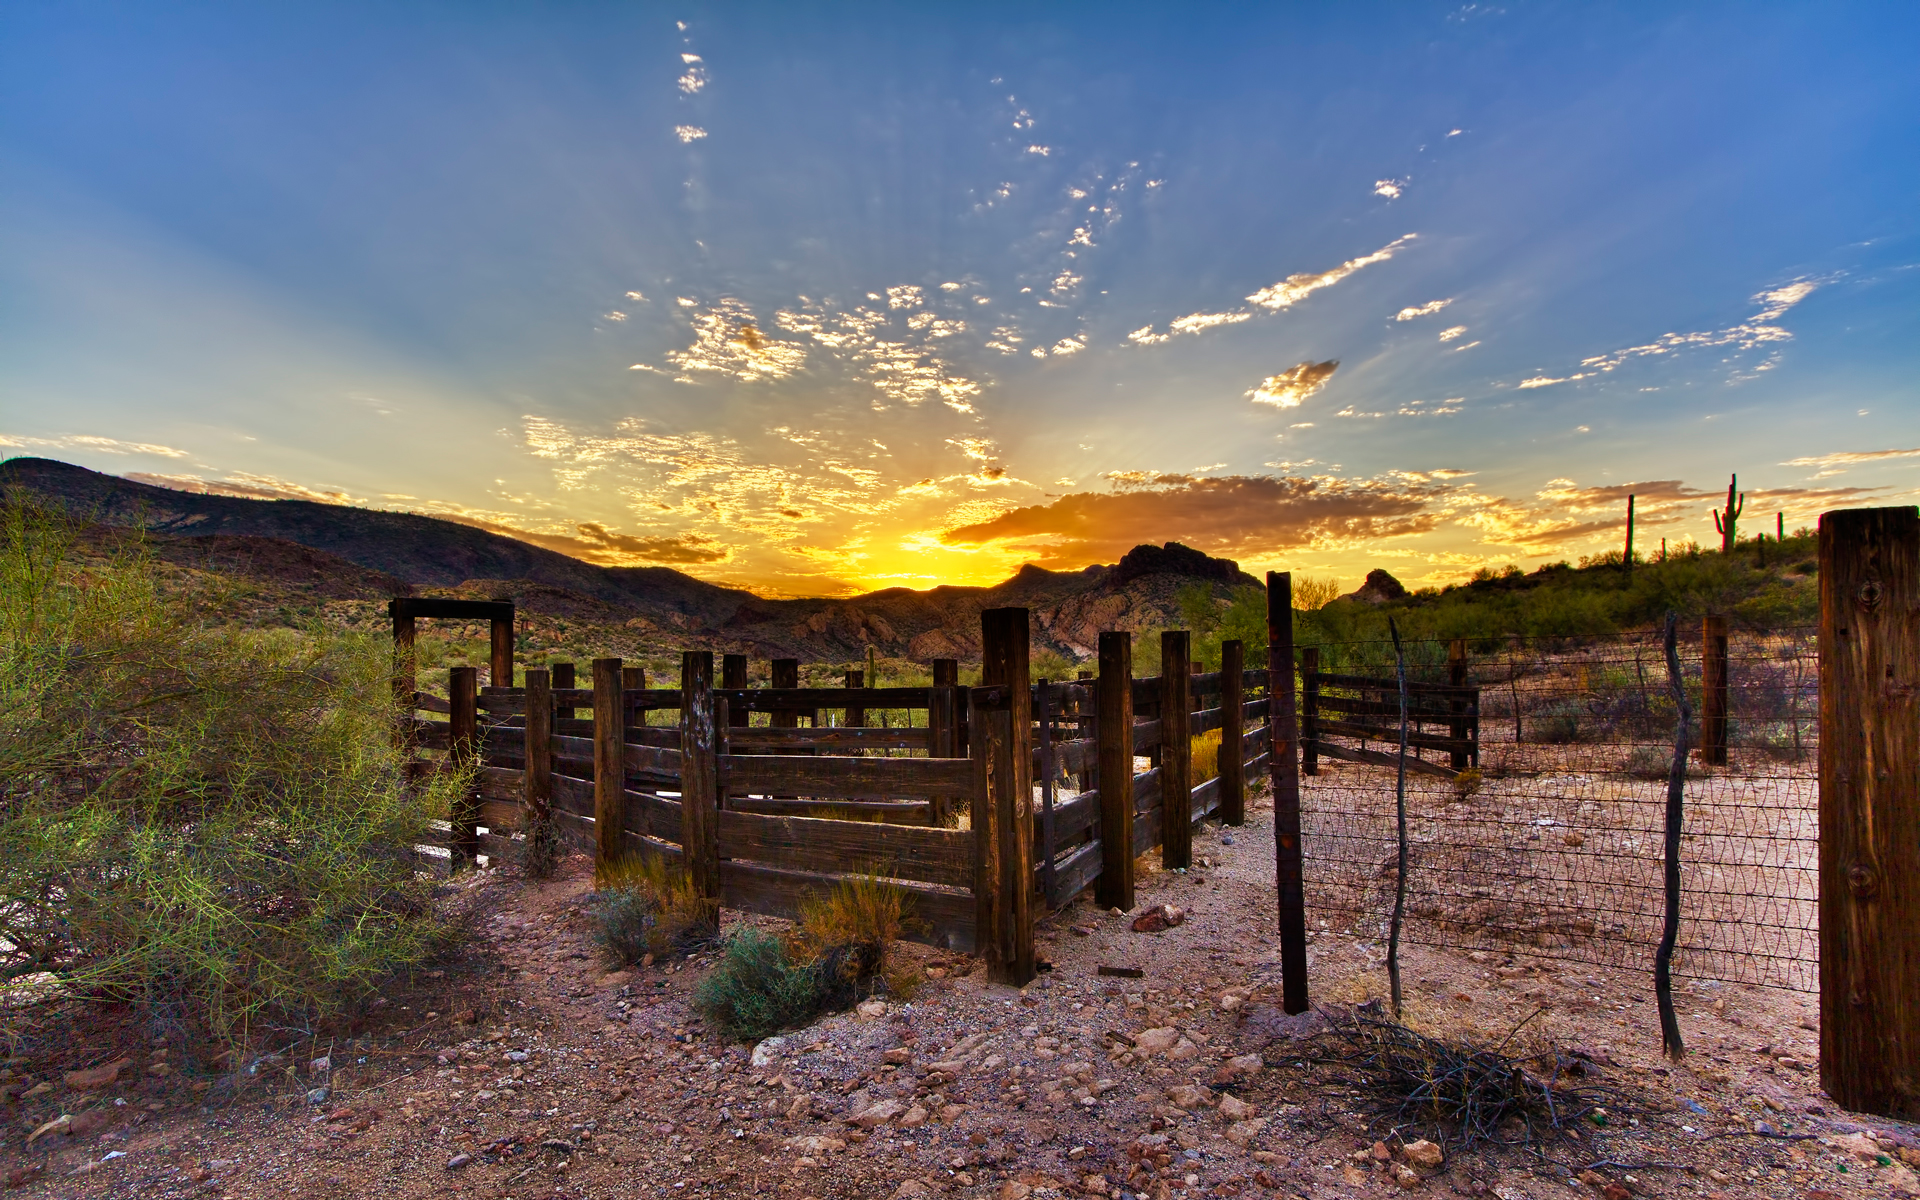 Man Made - Fence  Landscape Wallpaper